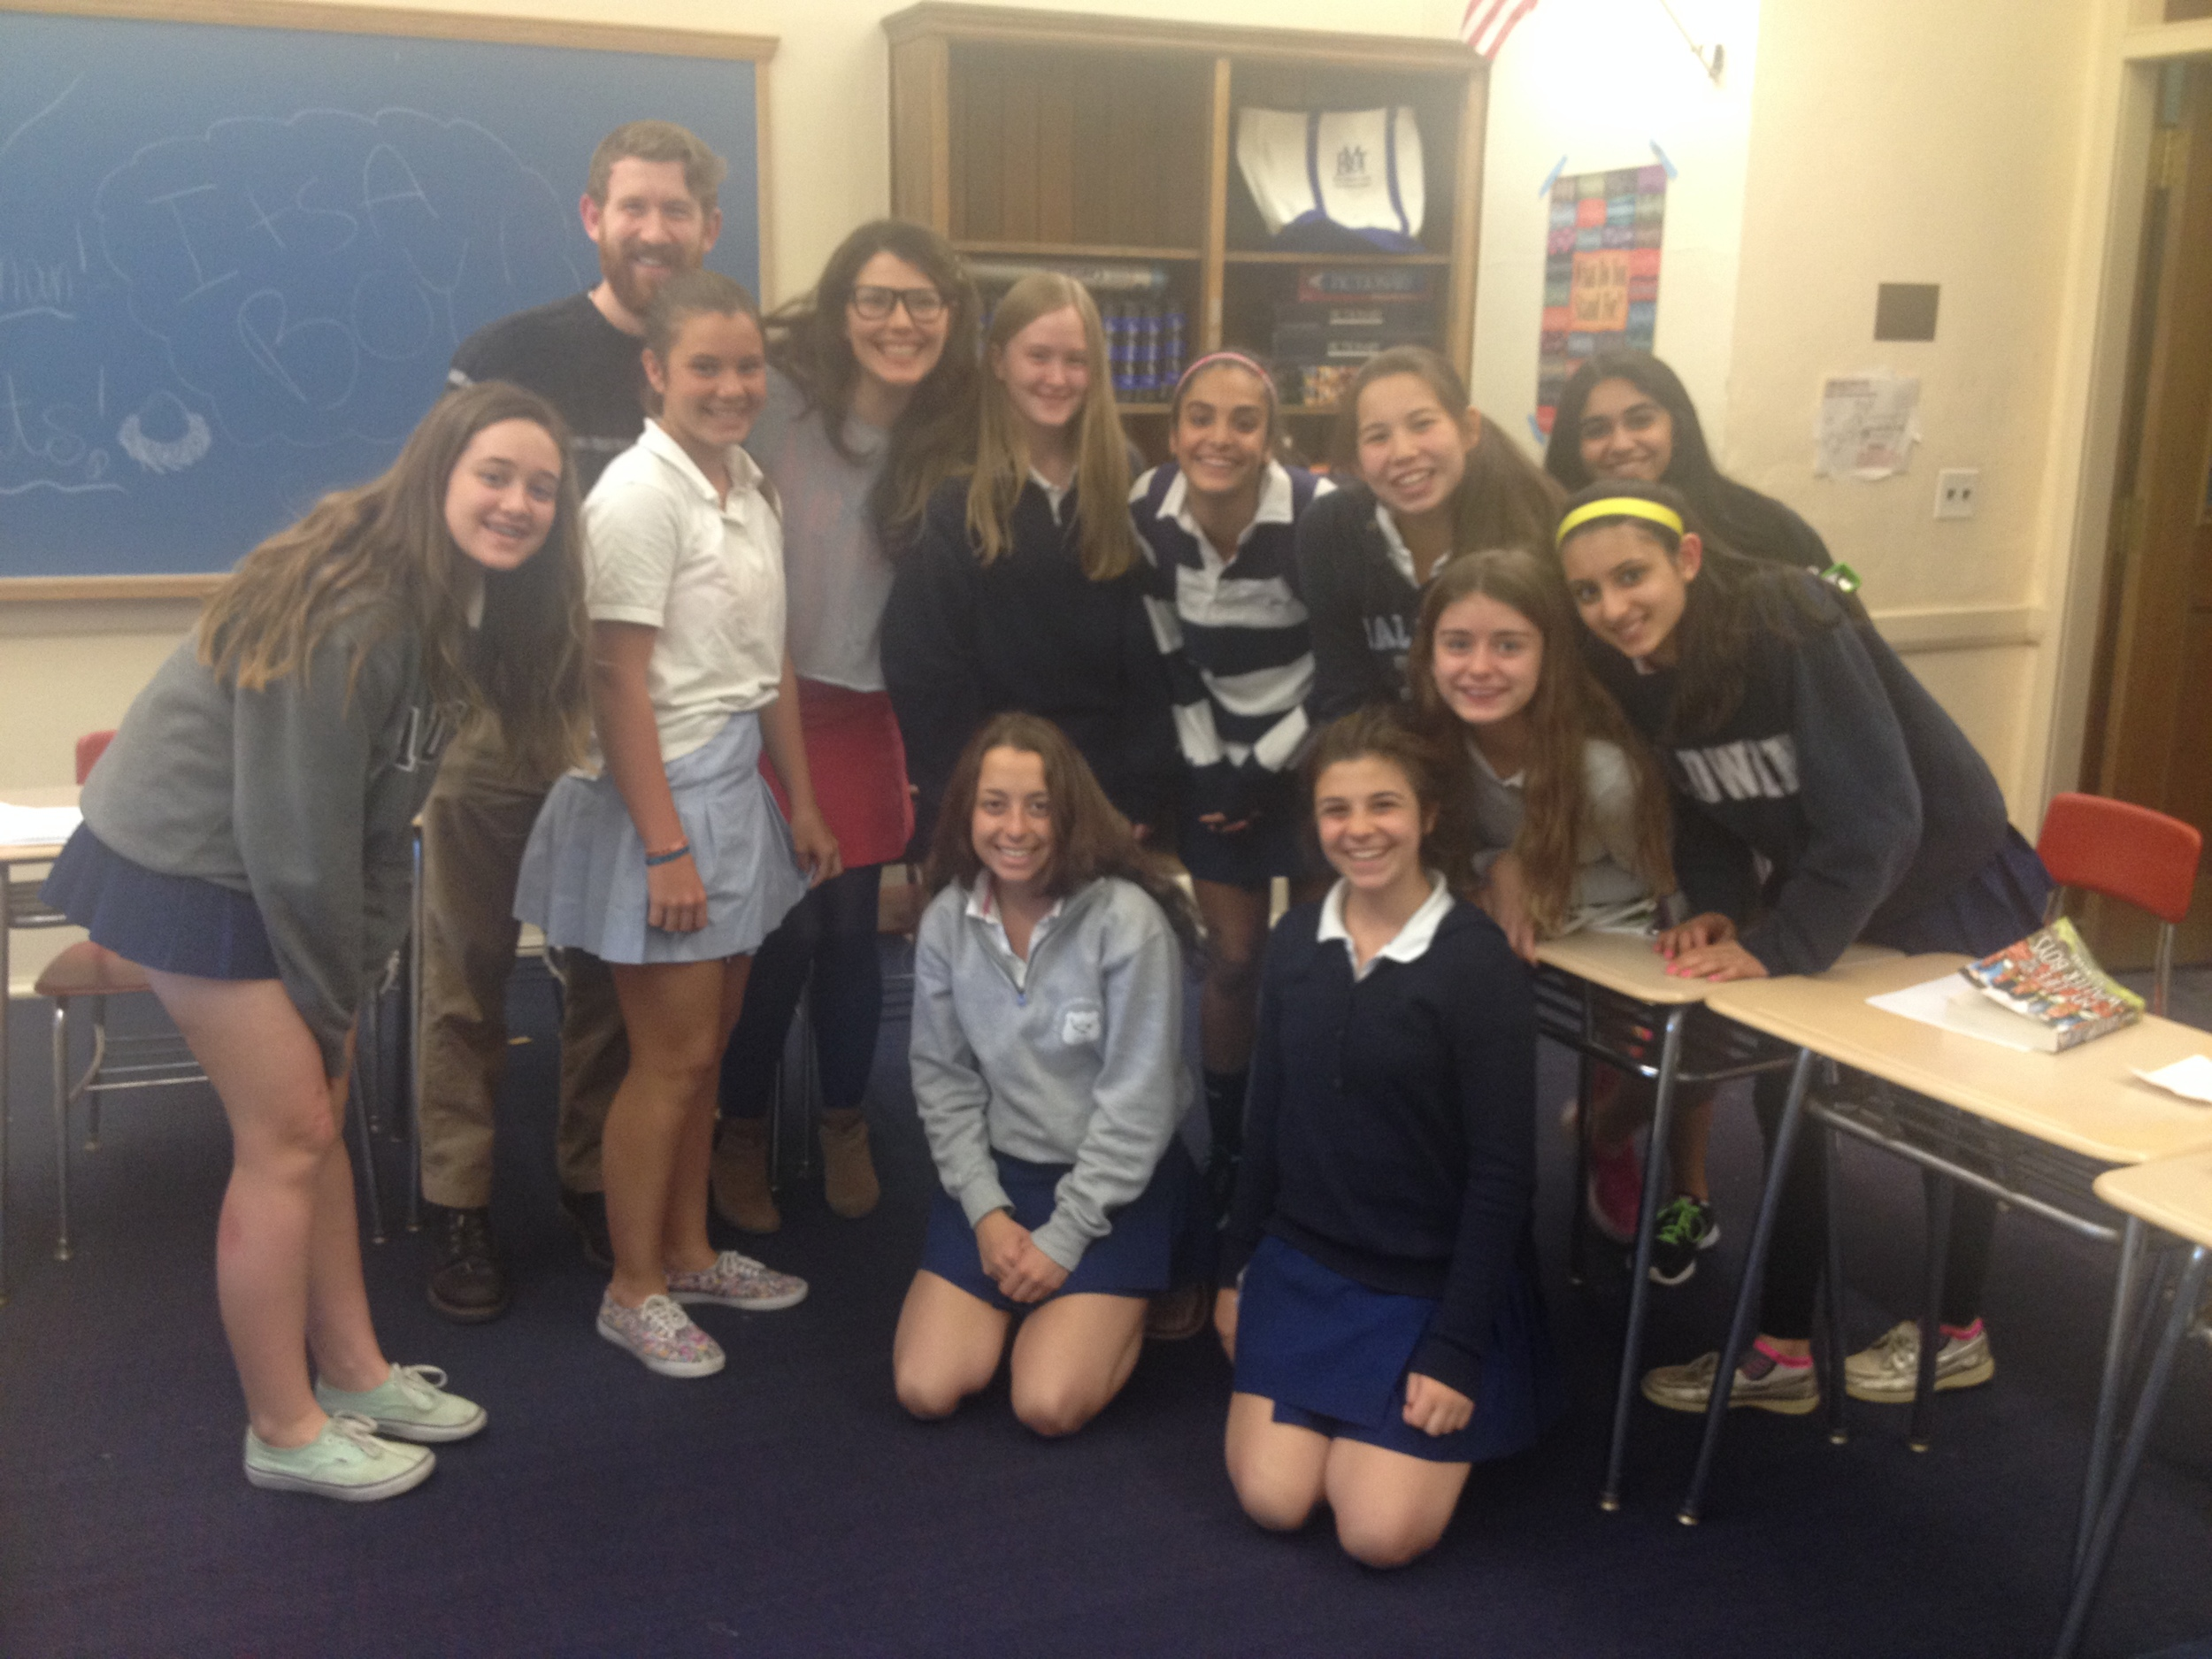 Artistic Director Griffin Stanton-Ameisen and Education Director Jessica DalCanton pose with students at The Baldwin School, following a successful Shakespeare workshop.